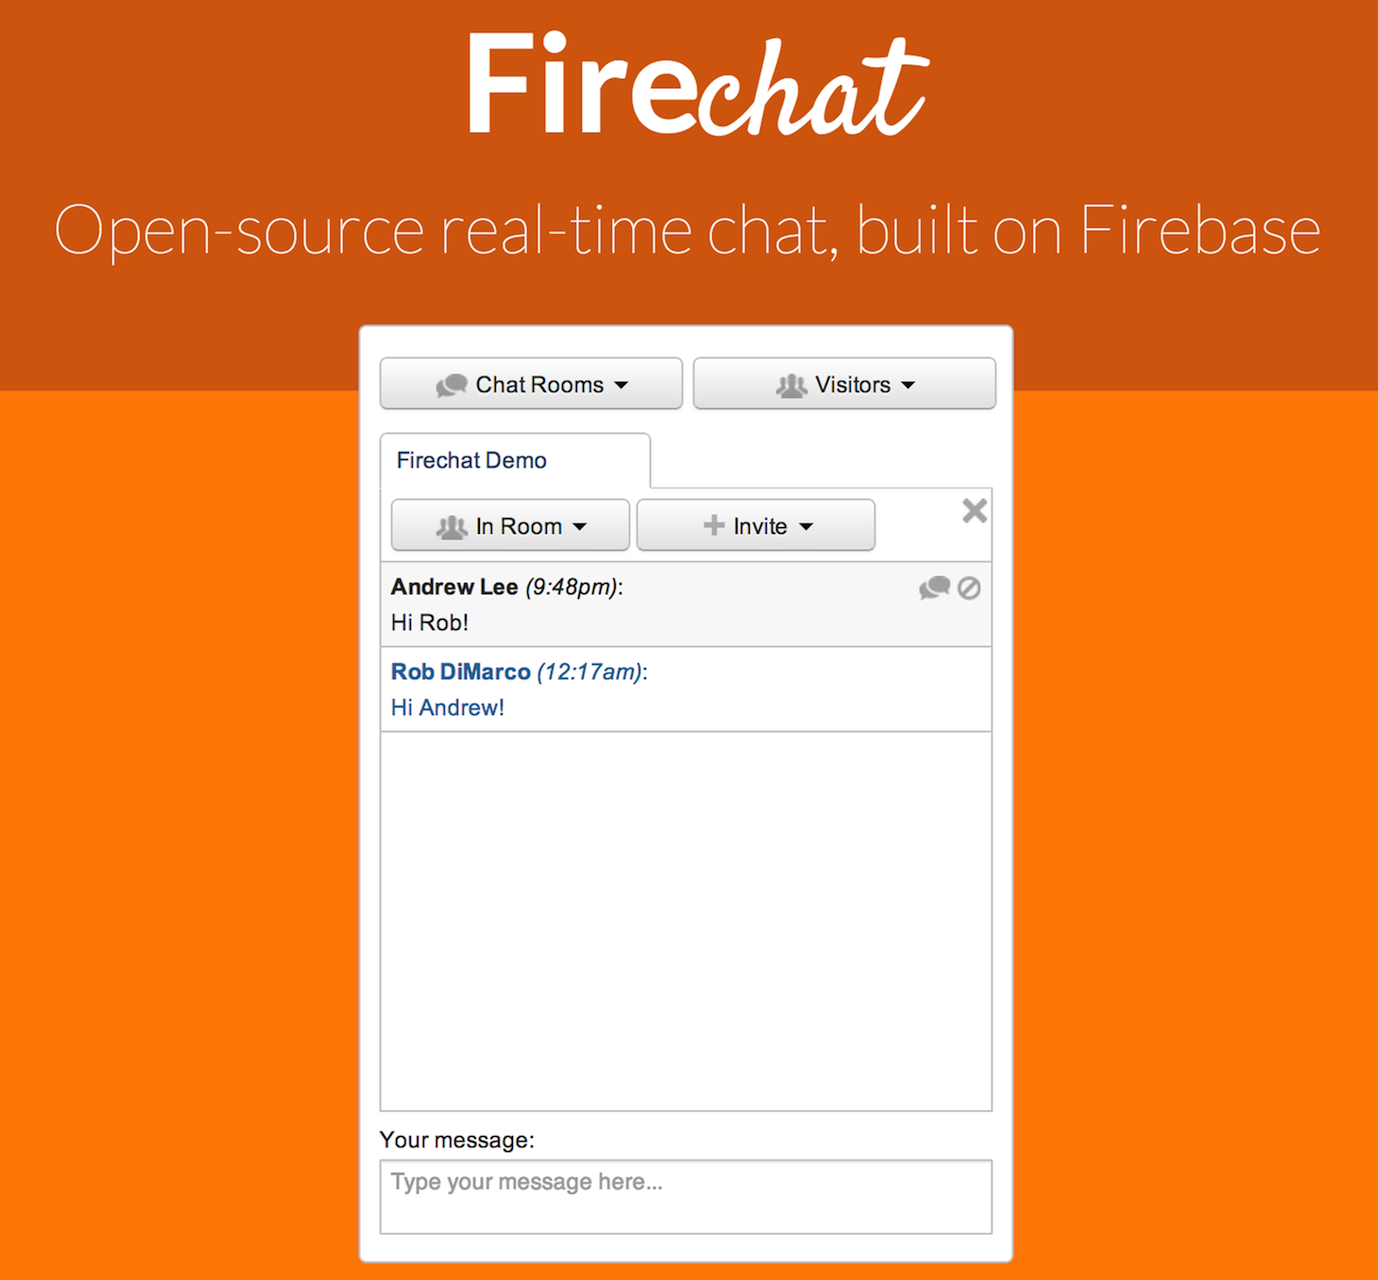 The Firebase Blog: Announcing Firechat: Open Source, Real-Time Chat